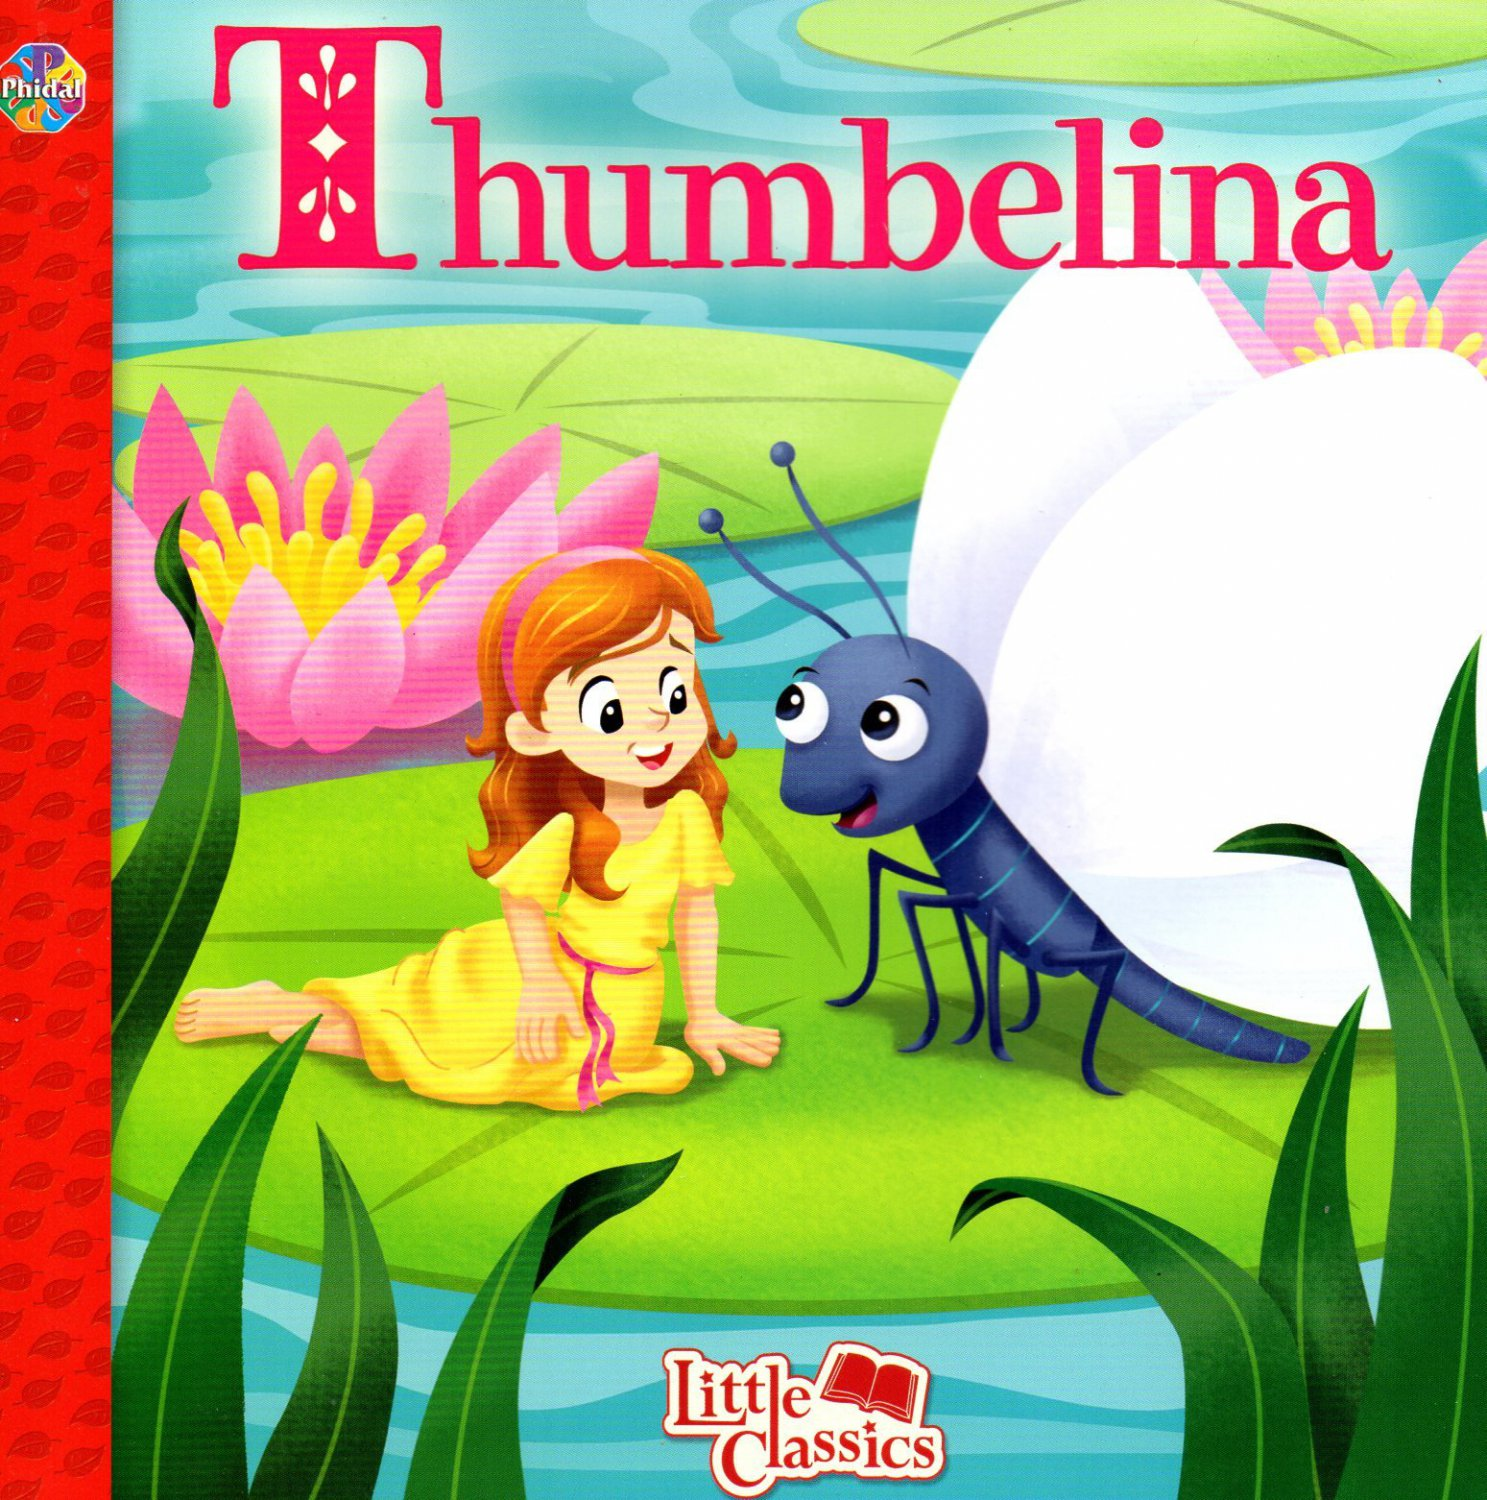 Thumbelina - The Little Classics collection - Classic Fairy Tales